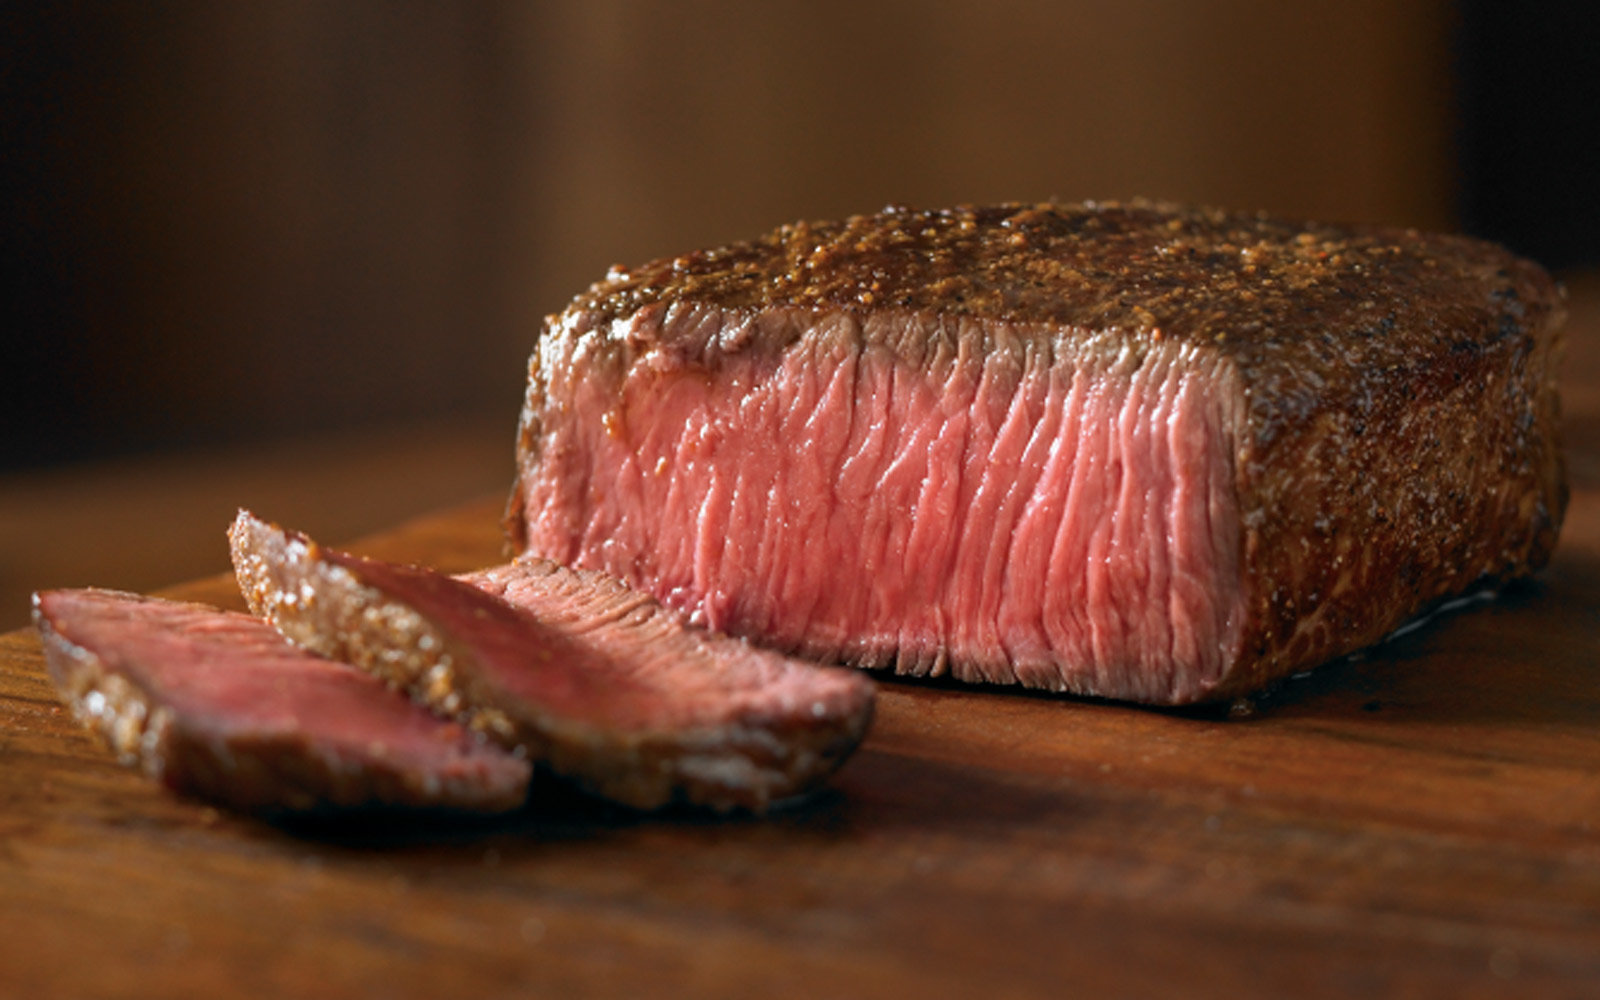 Outback Steakhouse: Special Sirloin